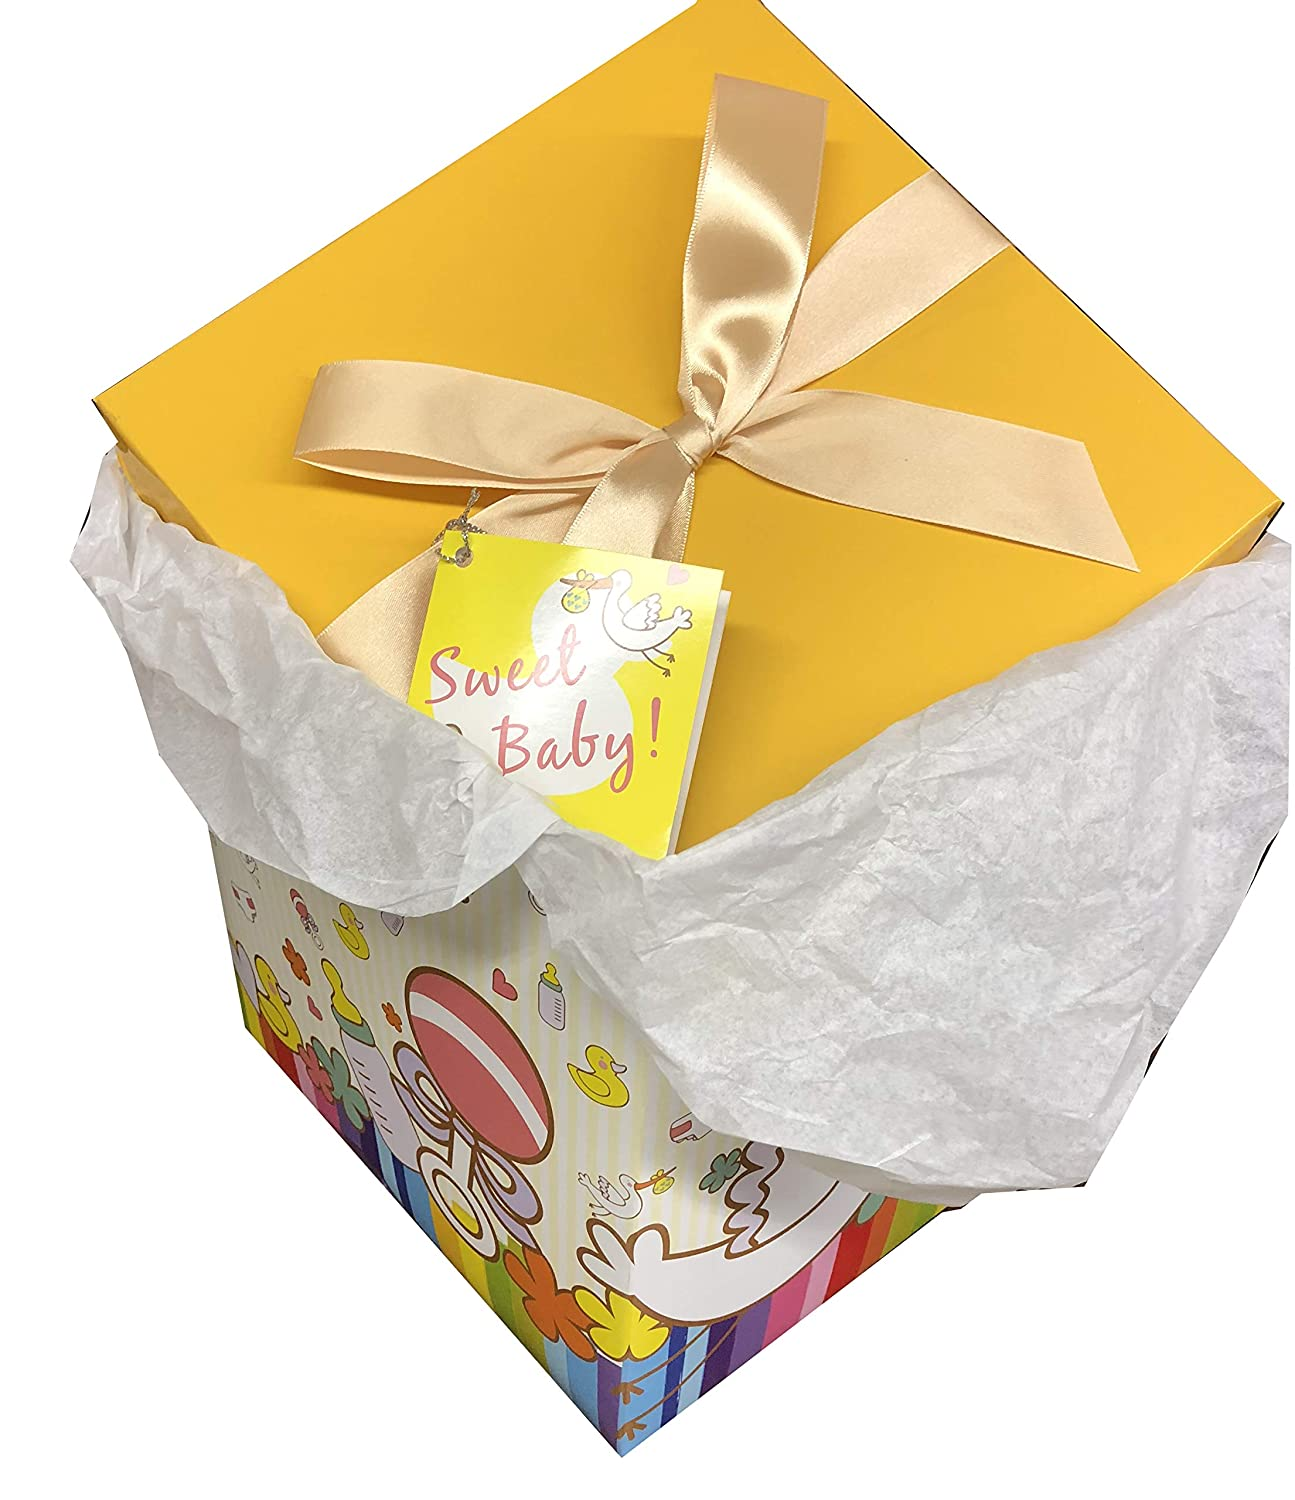 EndlessArtUS Petit Bebe EZ Gift Box. Easy to Assemble and No Glue Required. (4x4) BX-120-Par